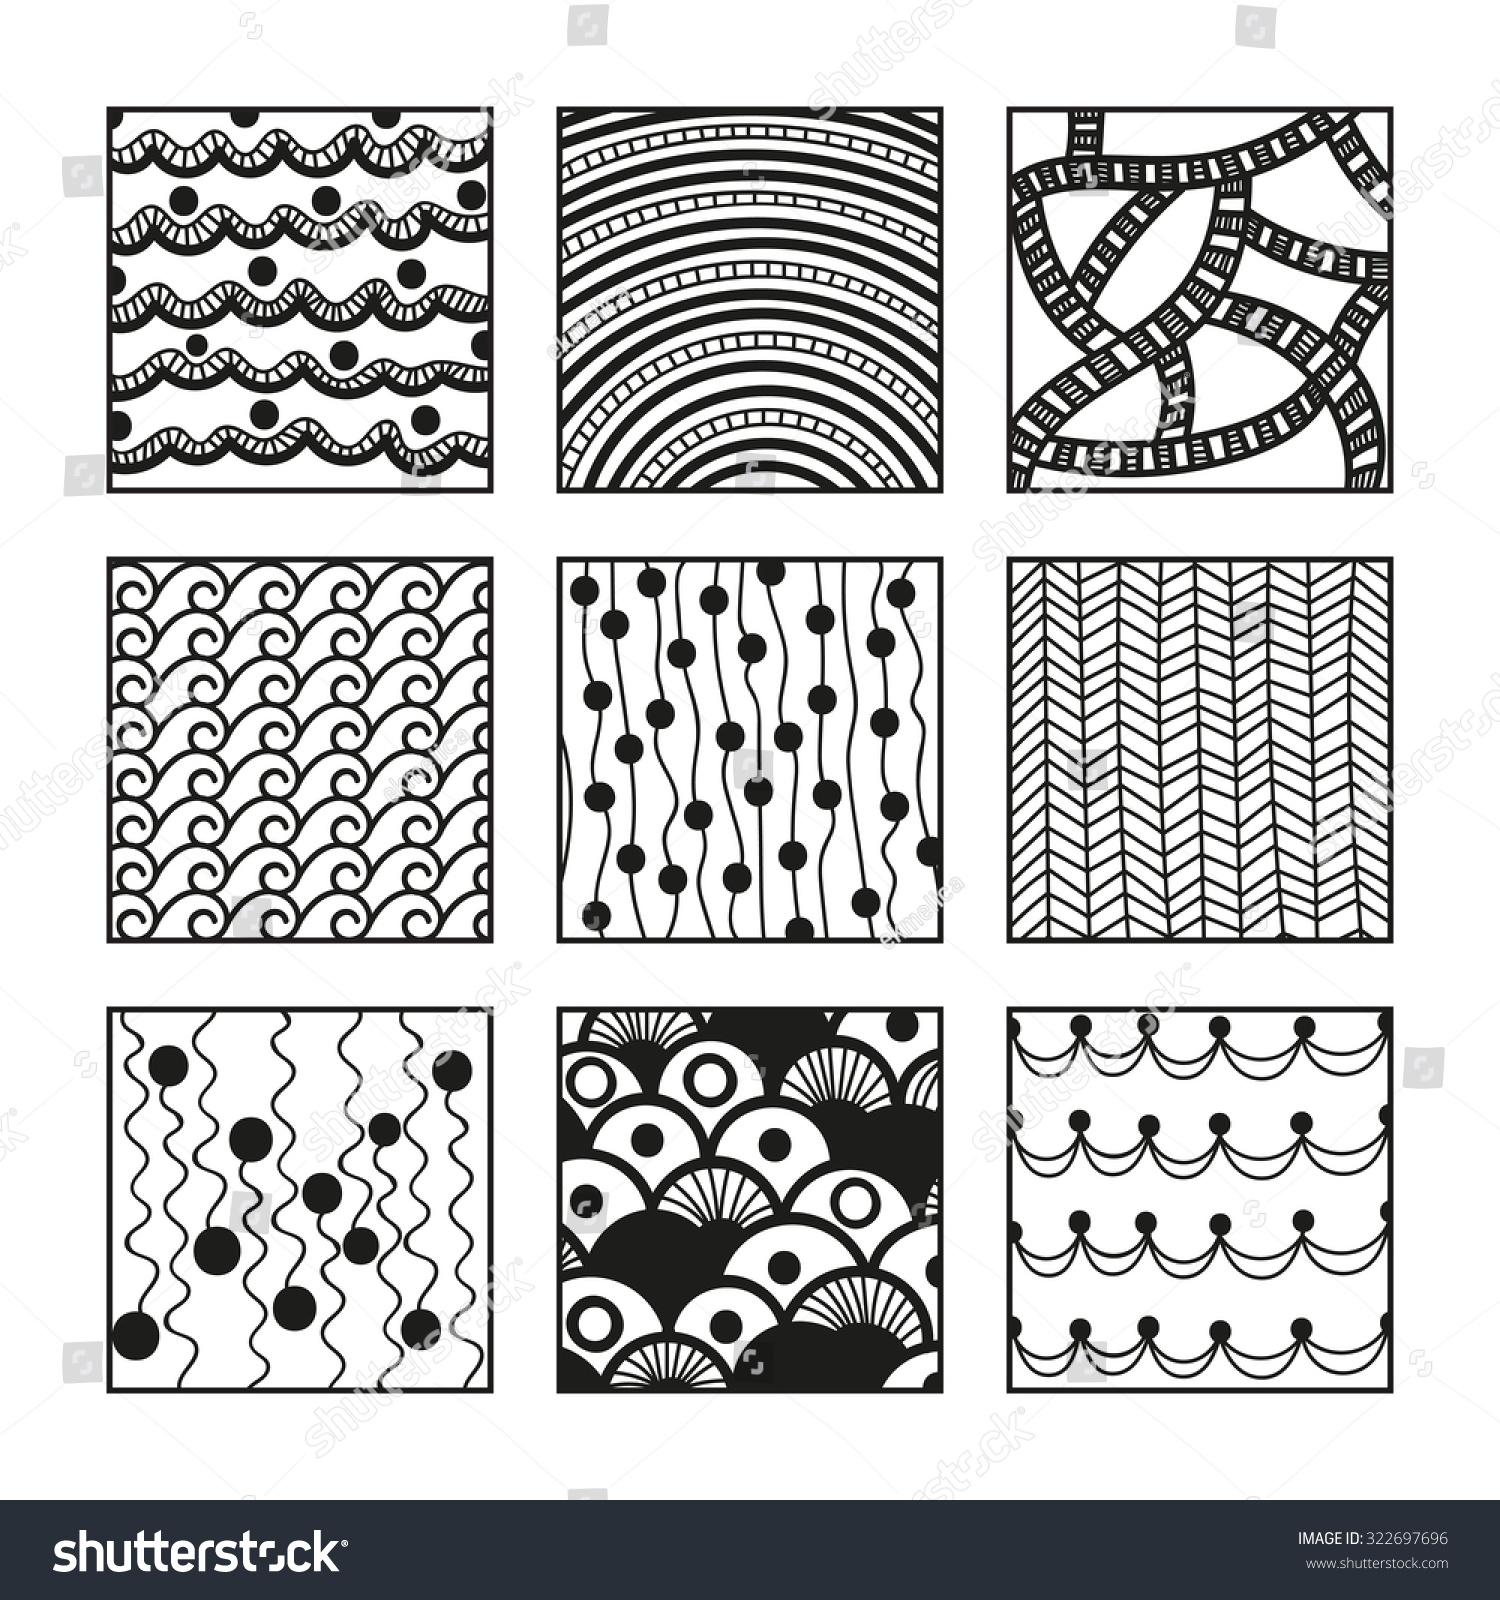 Zentangle Patterns Simple Decoration